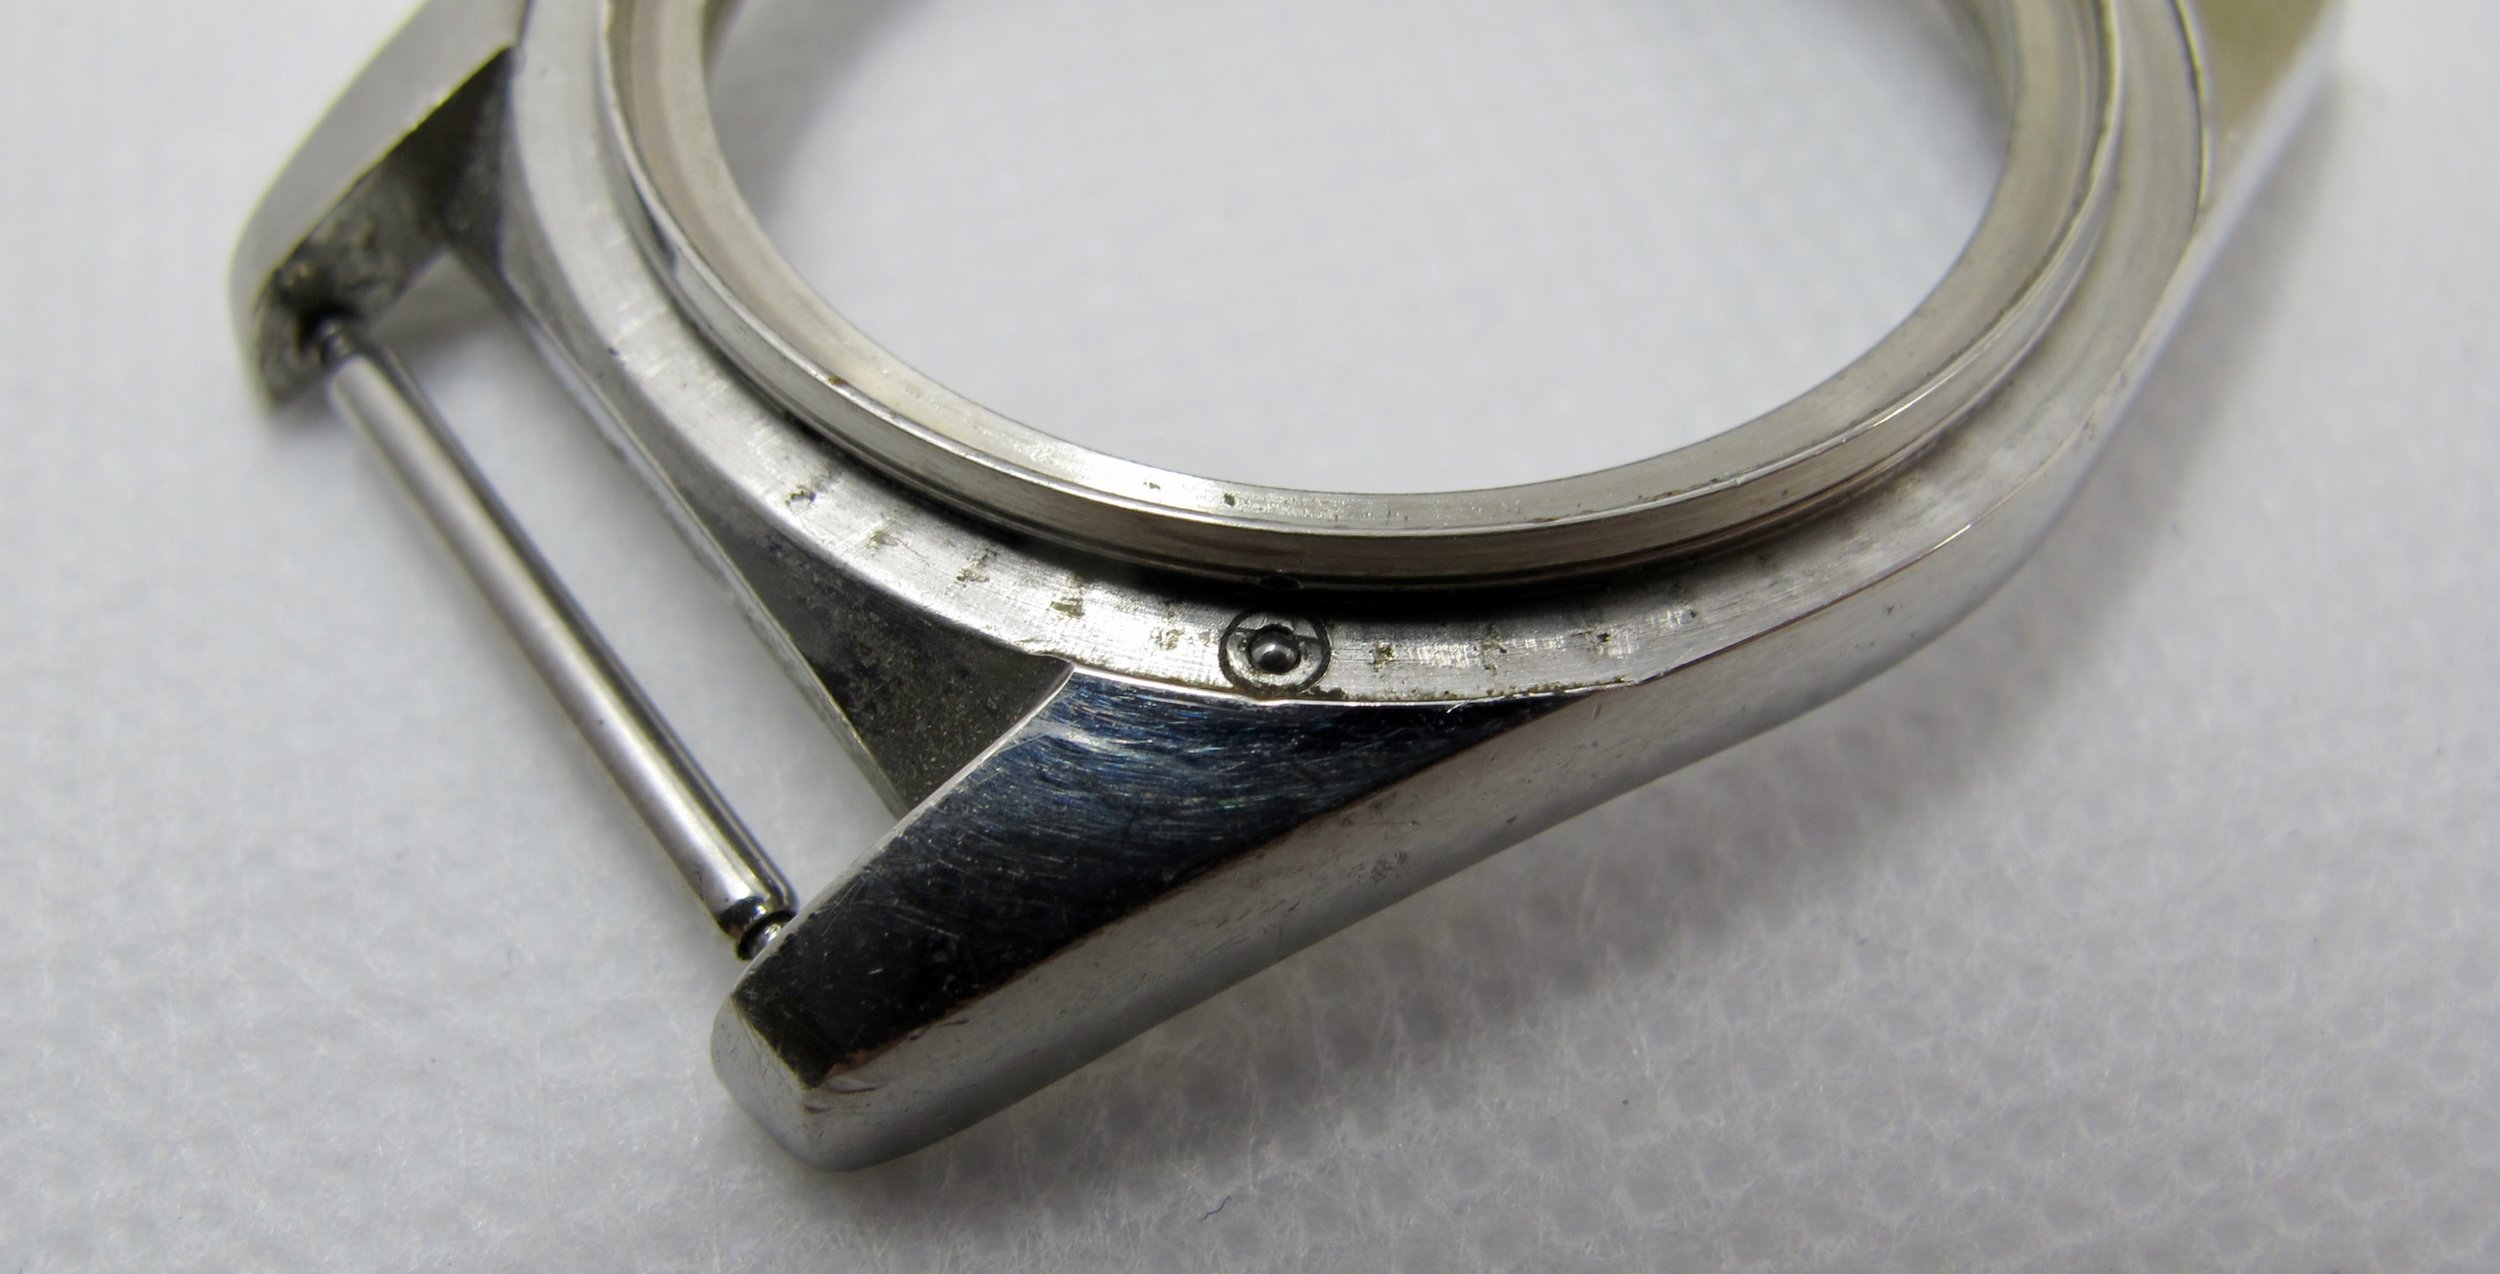 *Notice the small ball near the top left lug. This is how the bezel clicks with the groves on the bottom of the bezel.